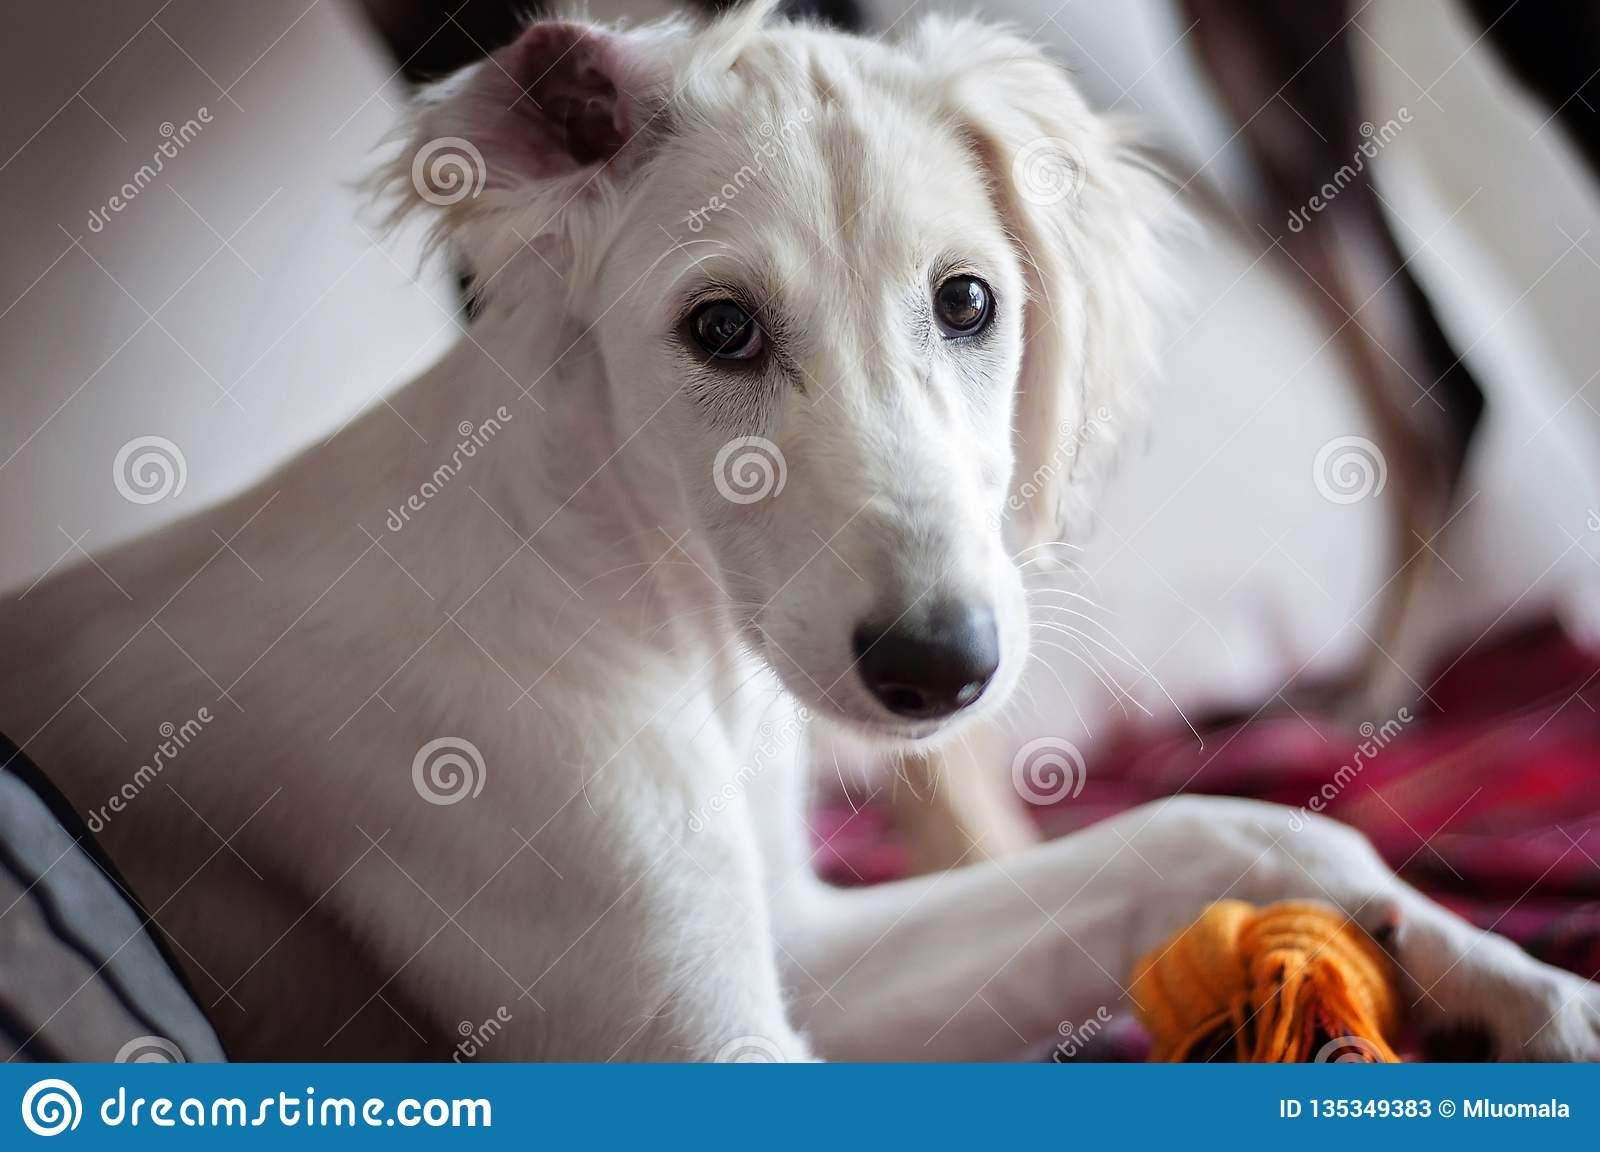 An alert white floppy eared saluki puppy relaxed on a sofa, an ear on a wrong way around